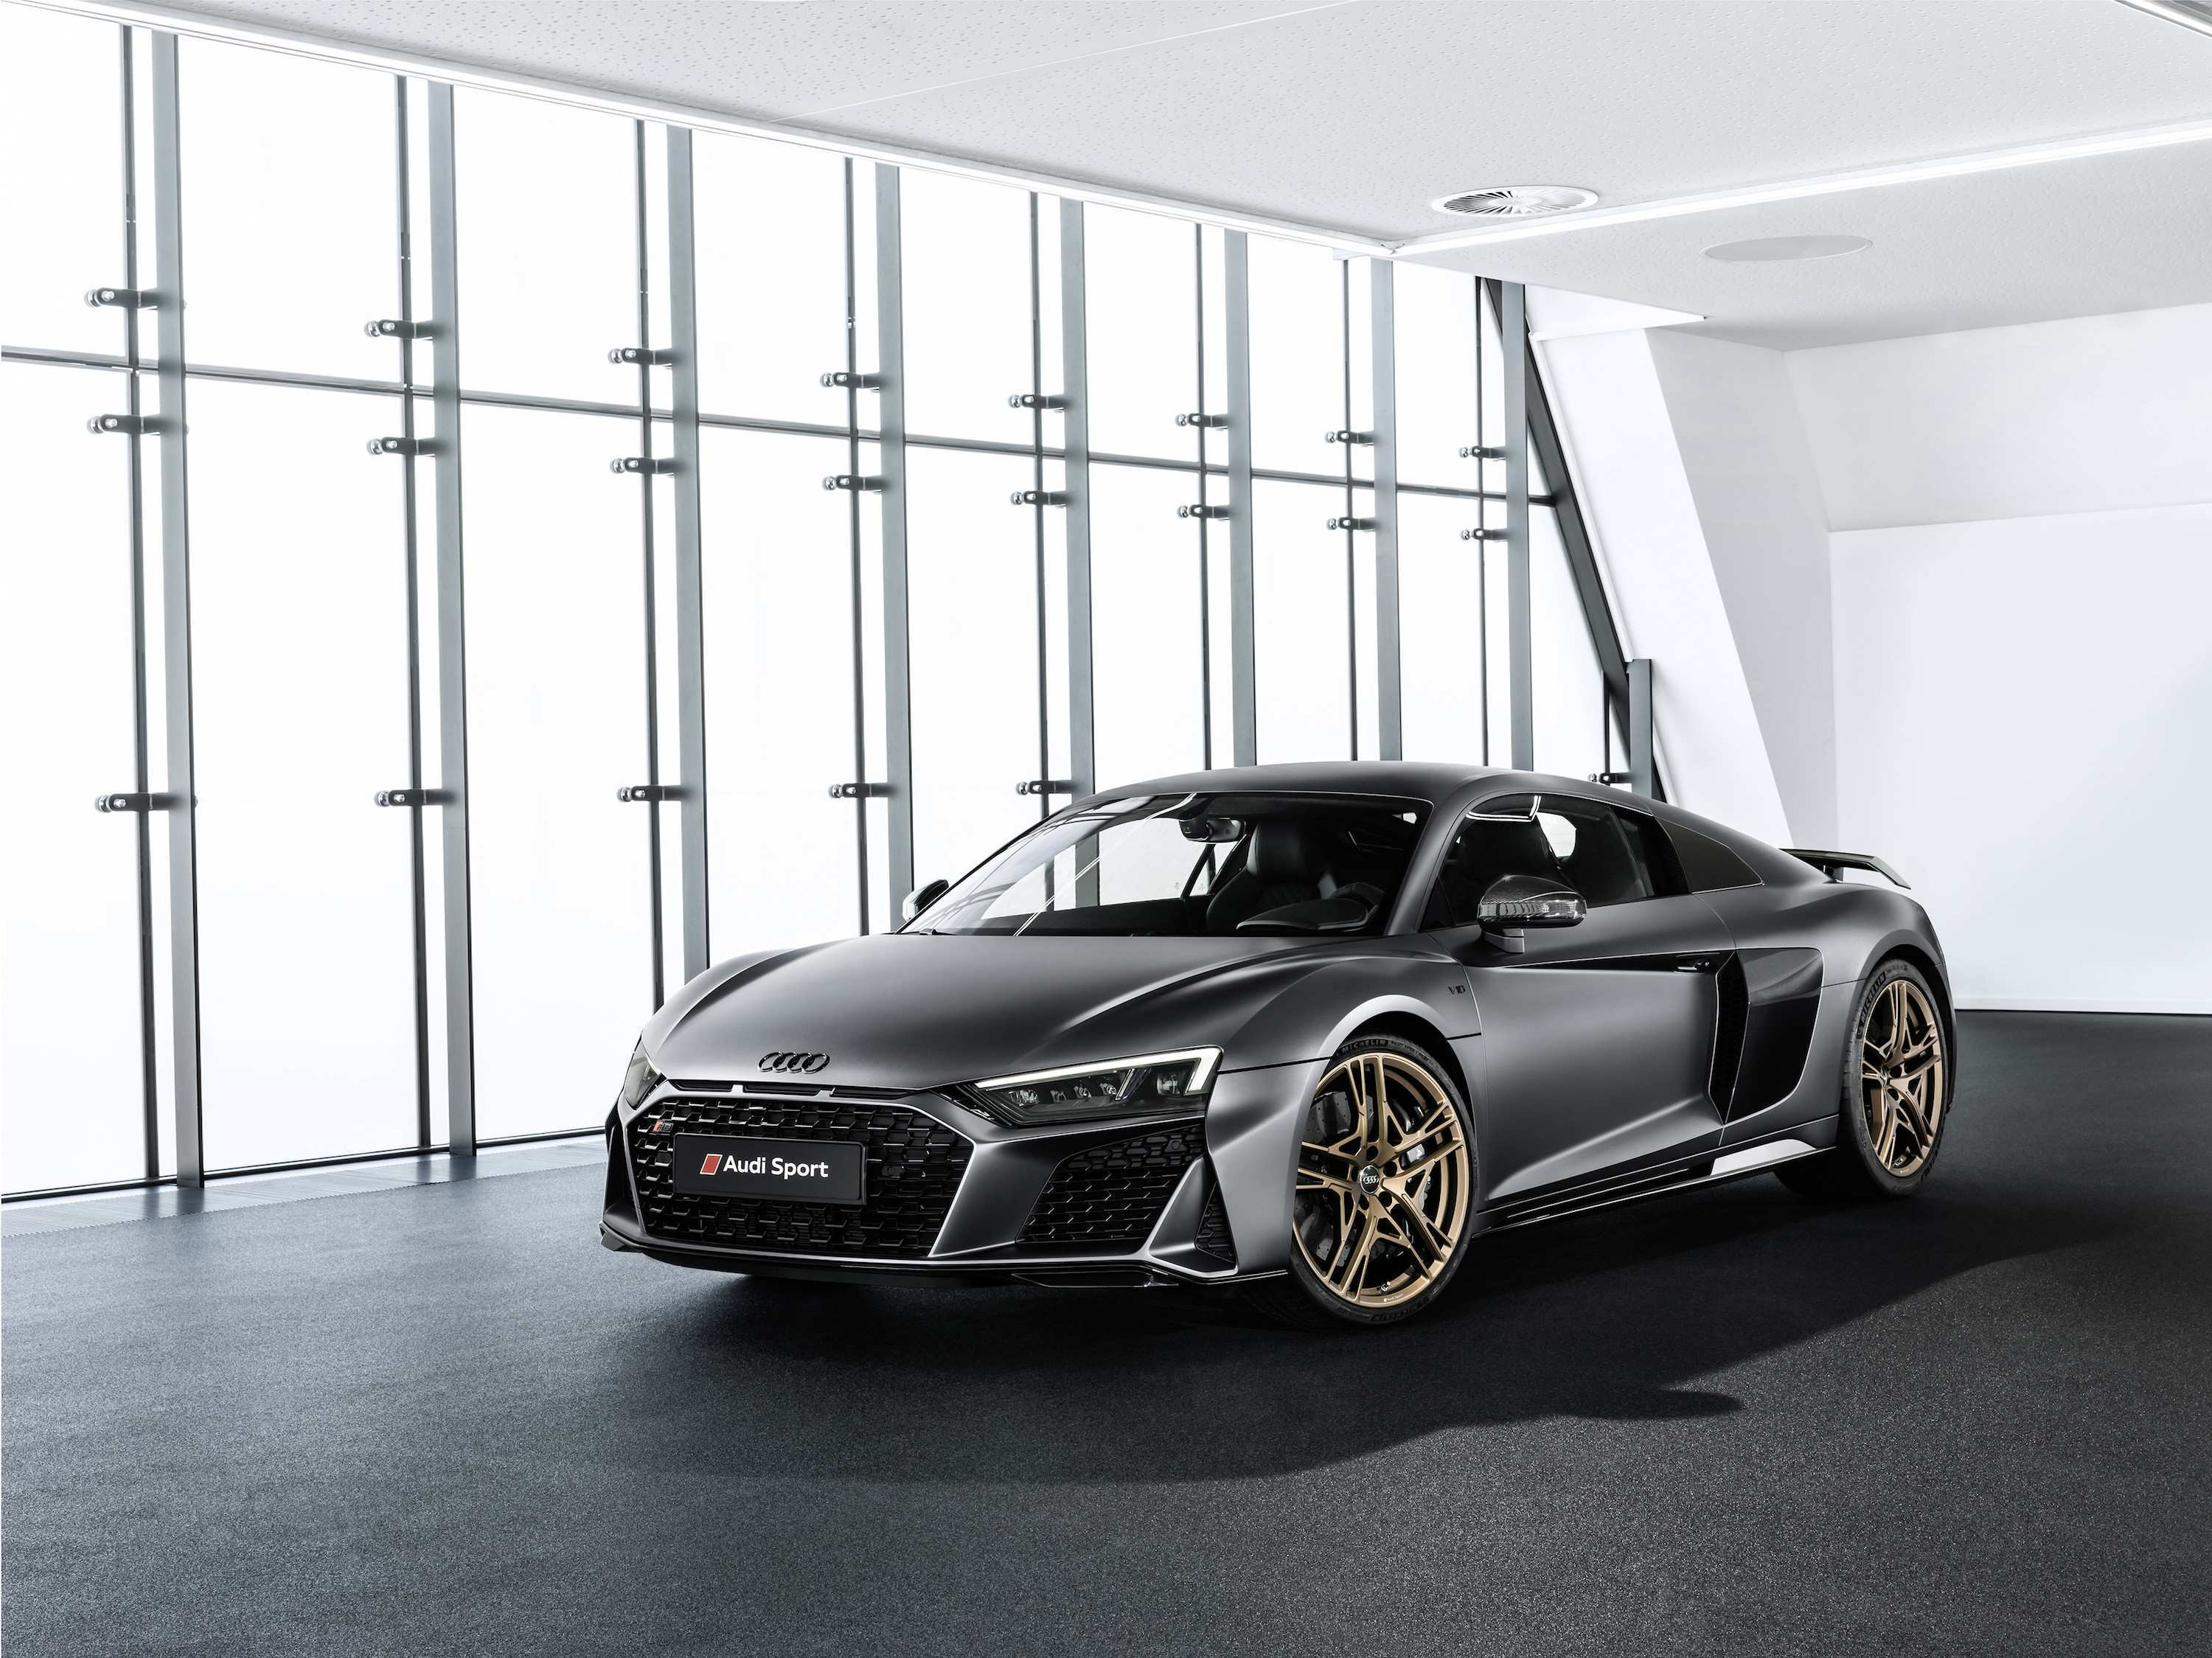 81 The Best 2020 Audi R8 Gt Exterior And Interior